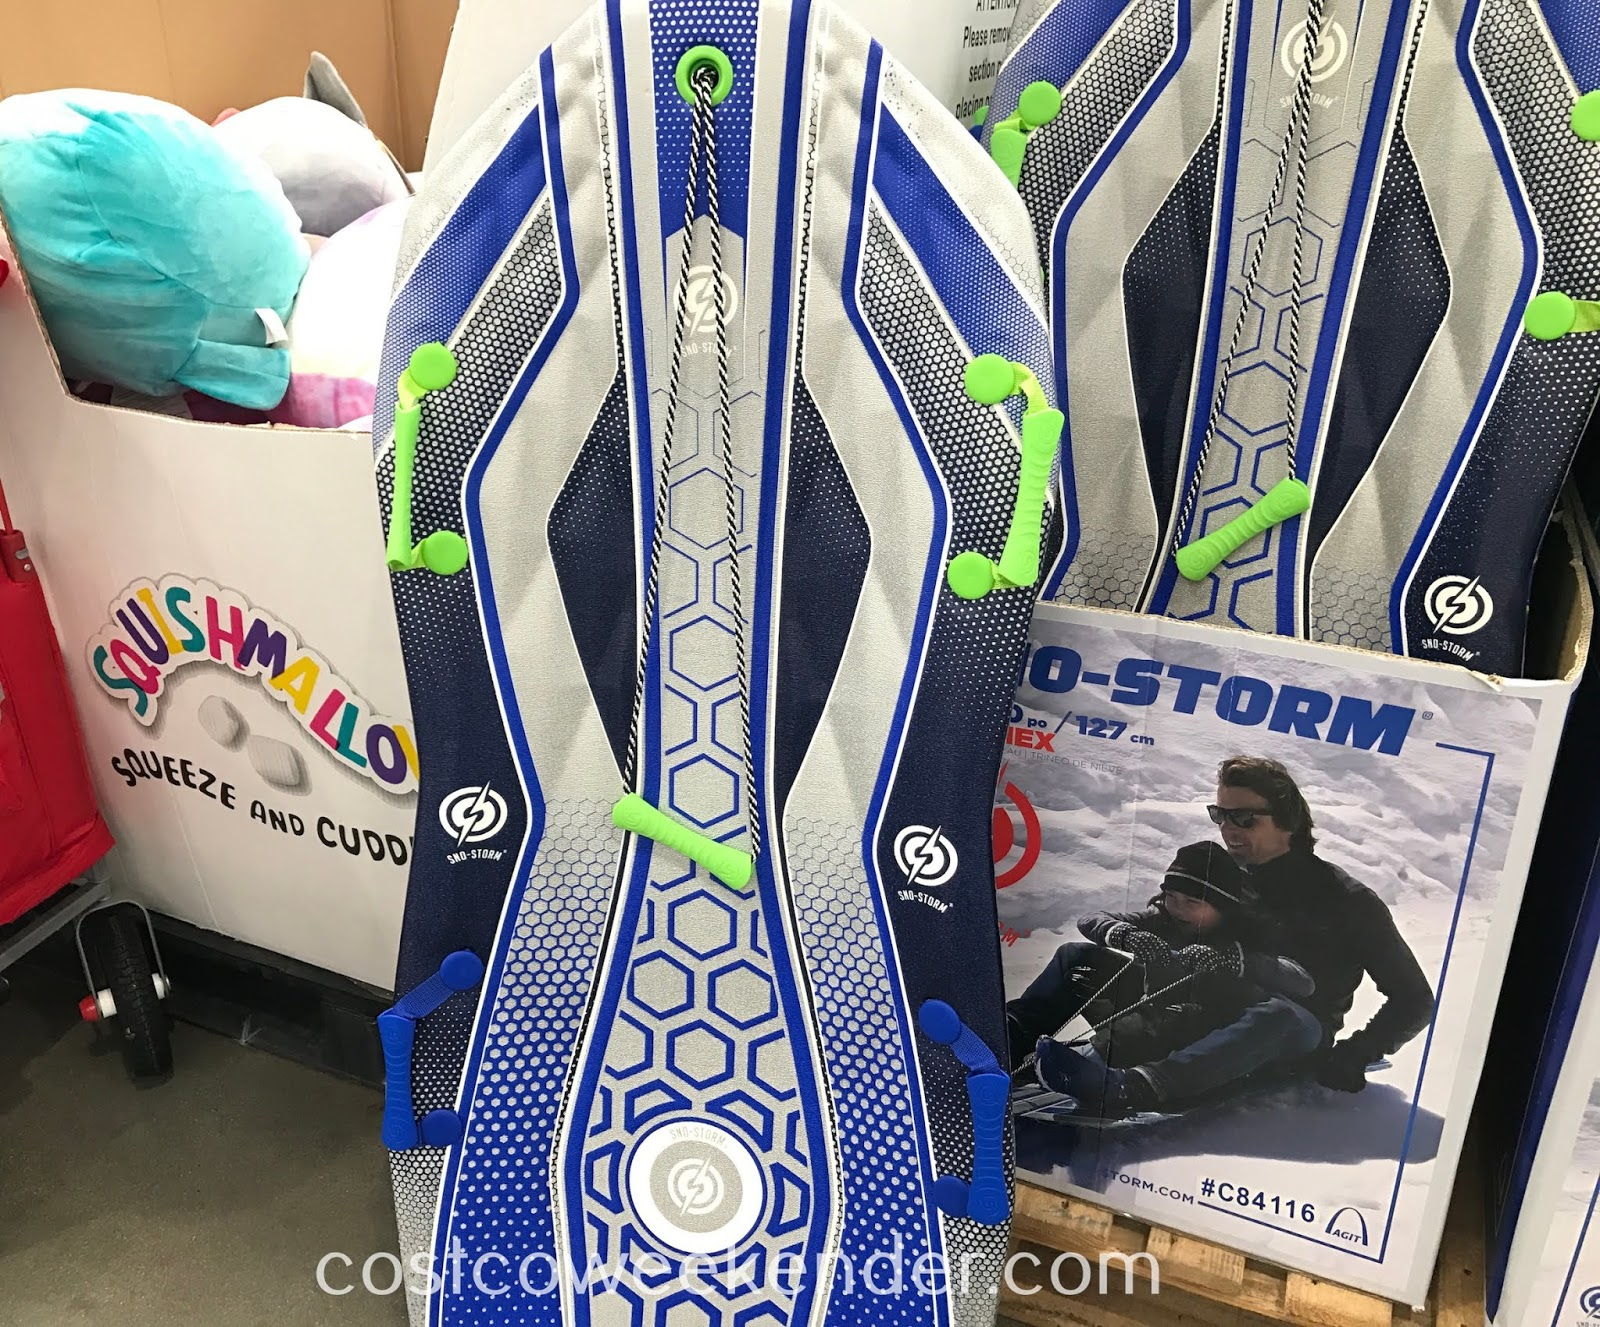 Have fun in the snow with the Sno-Storm Vipernex Snow Sled